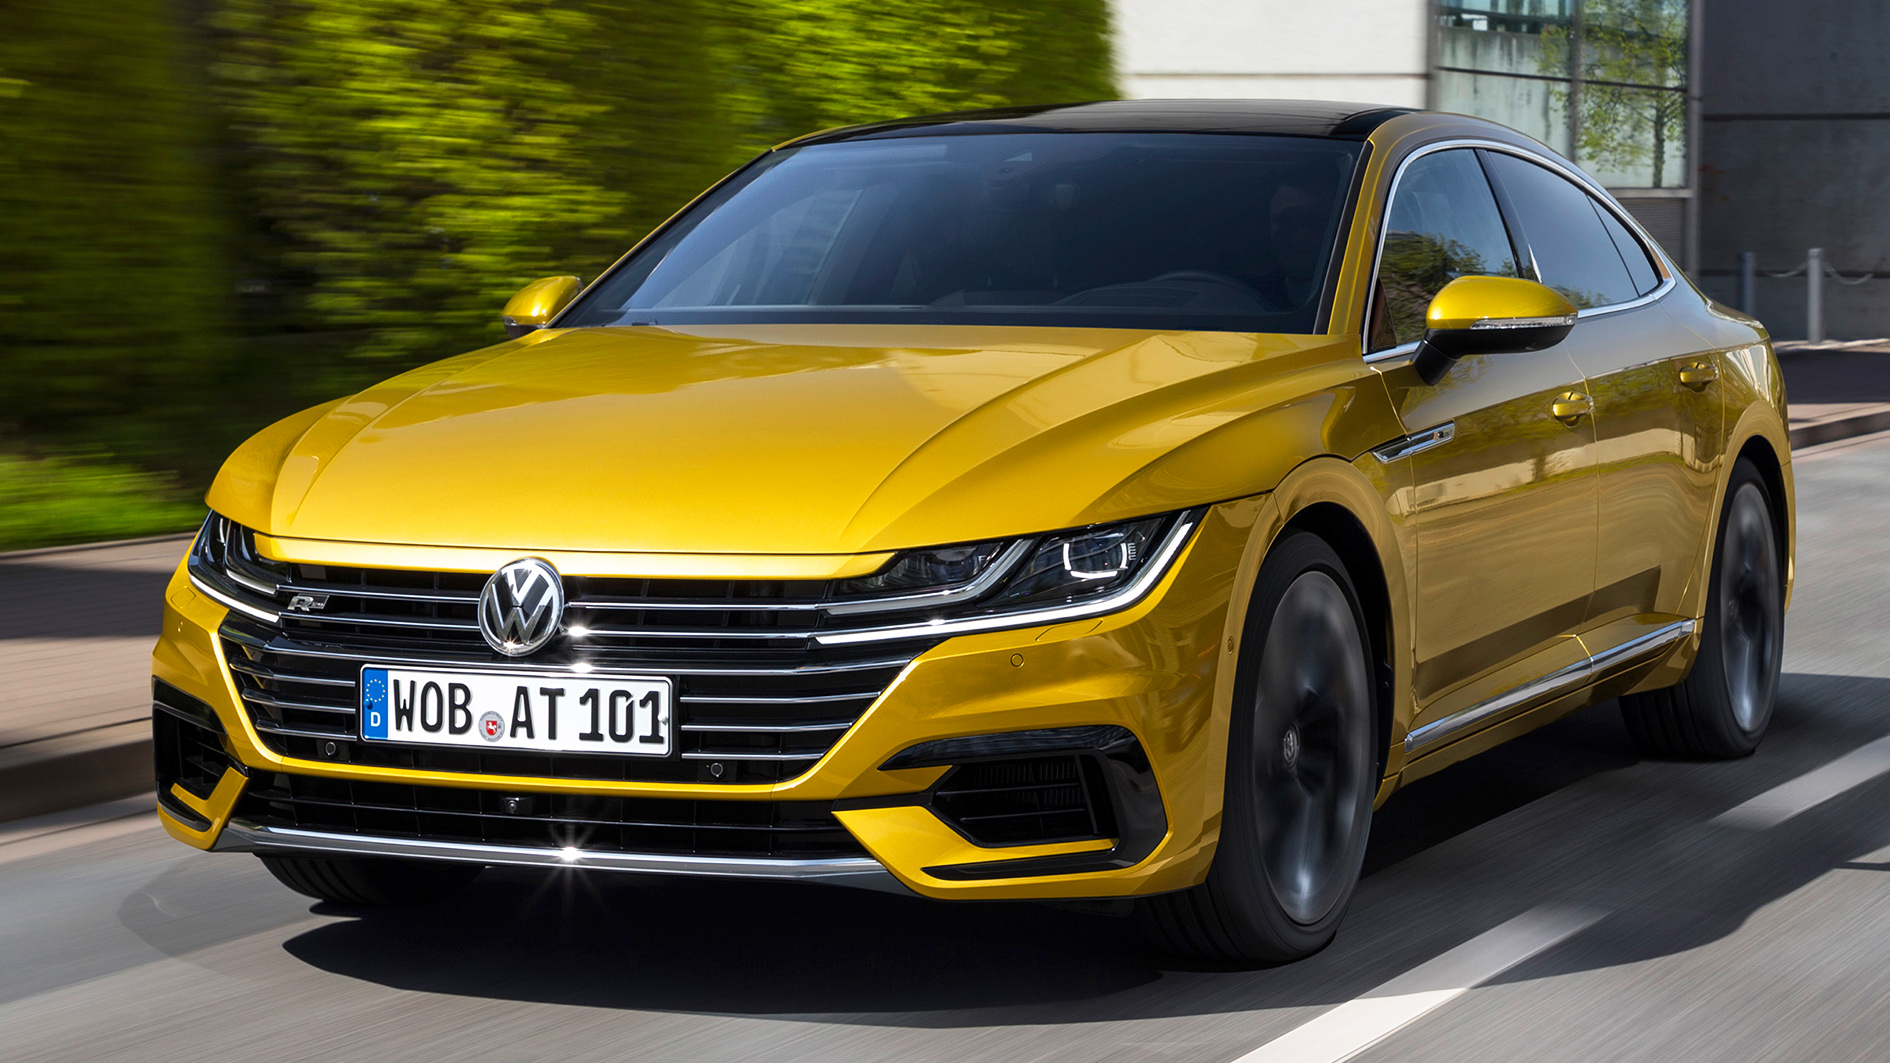 volkswagen vw arteon review test drive 2017 2 0 tdi r line 4motion. Black Bedroom Furniture Sets. Home Design Ideas